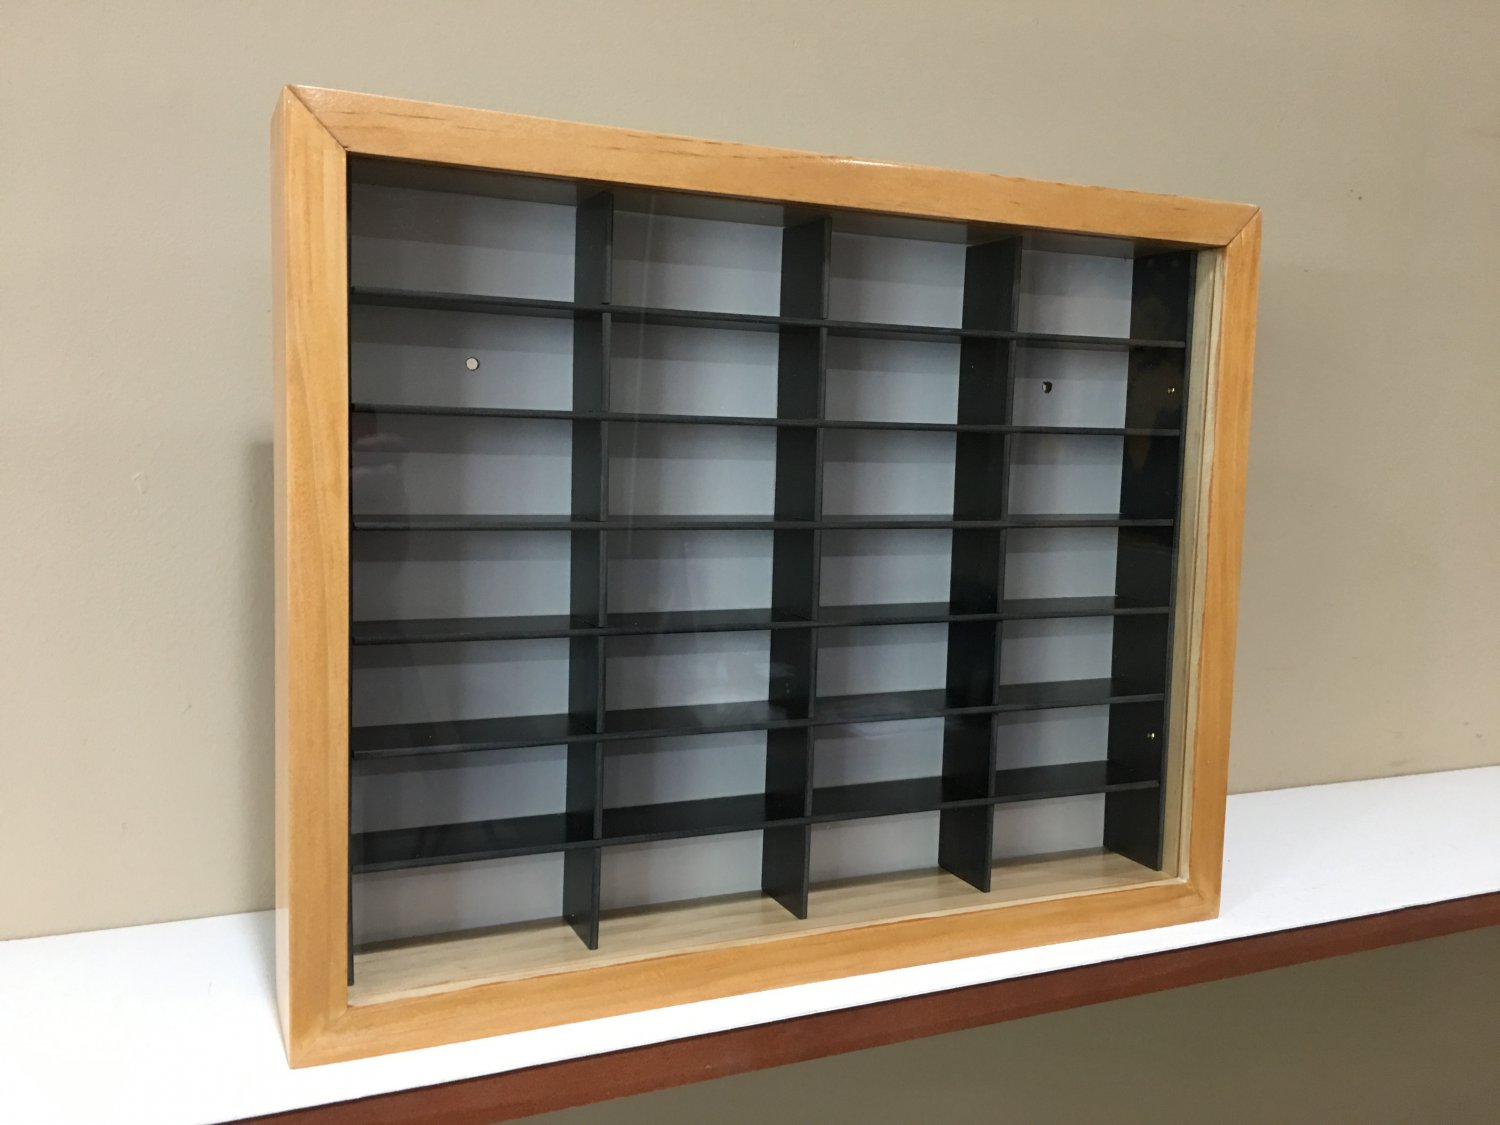 Display case cabinet for 1/64 diecast scale cars (hot wheels, matchbox) - 28NWB-1